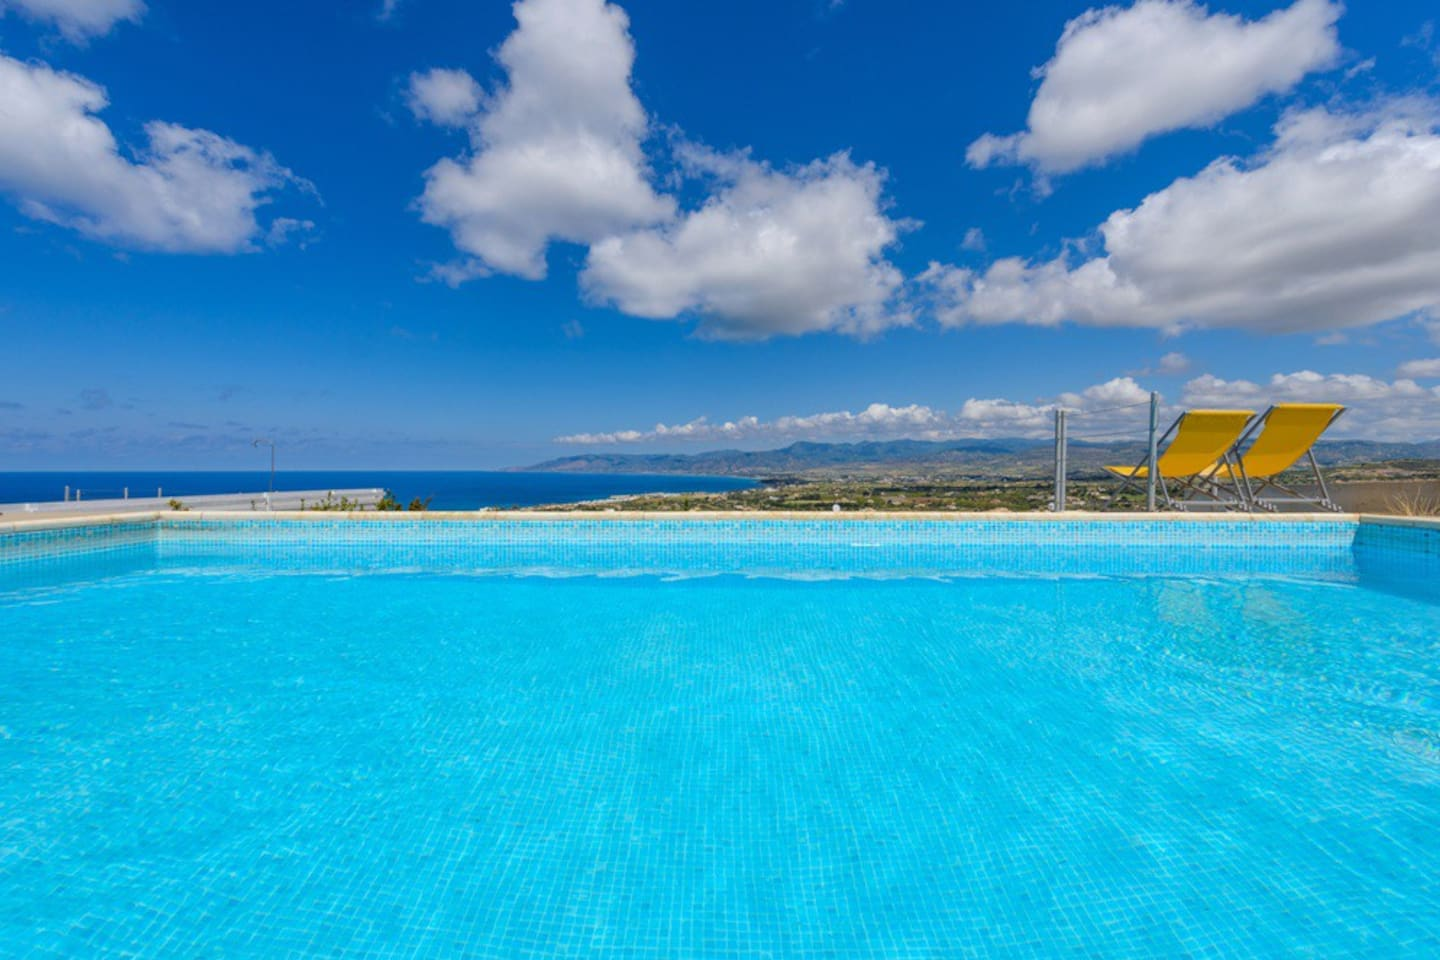 View Of The Swimming Pool And Sea View